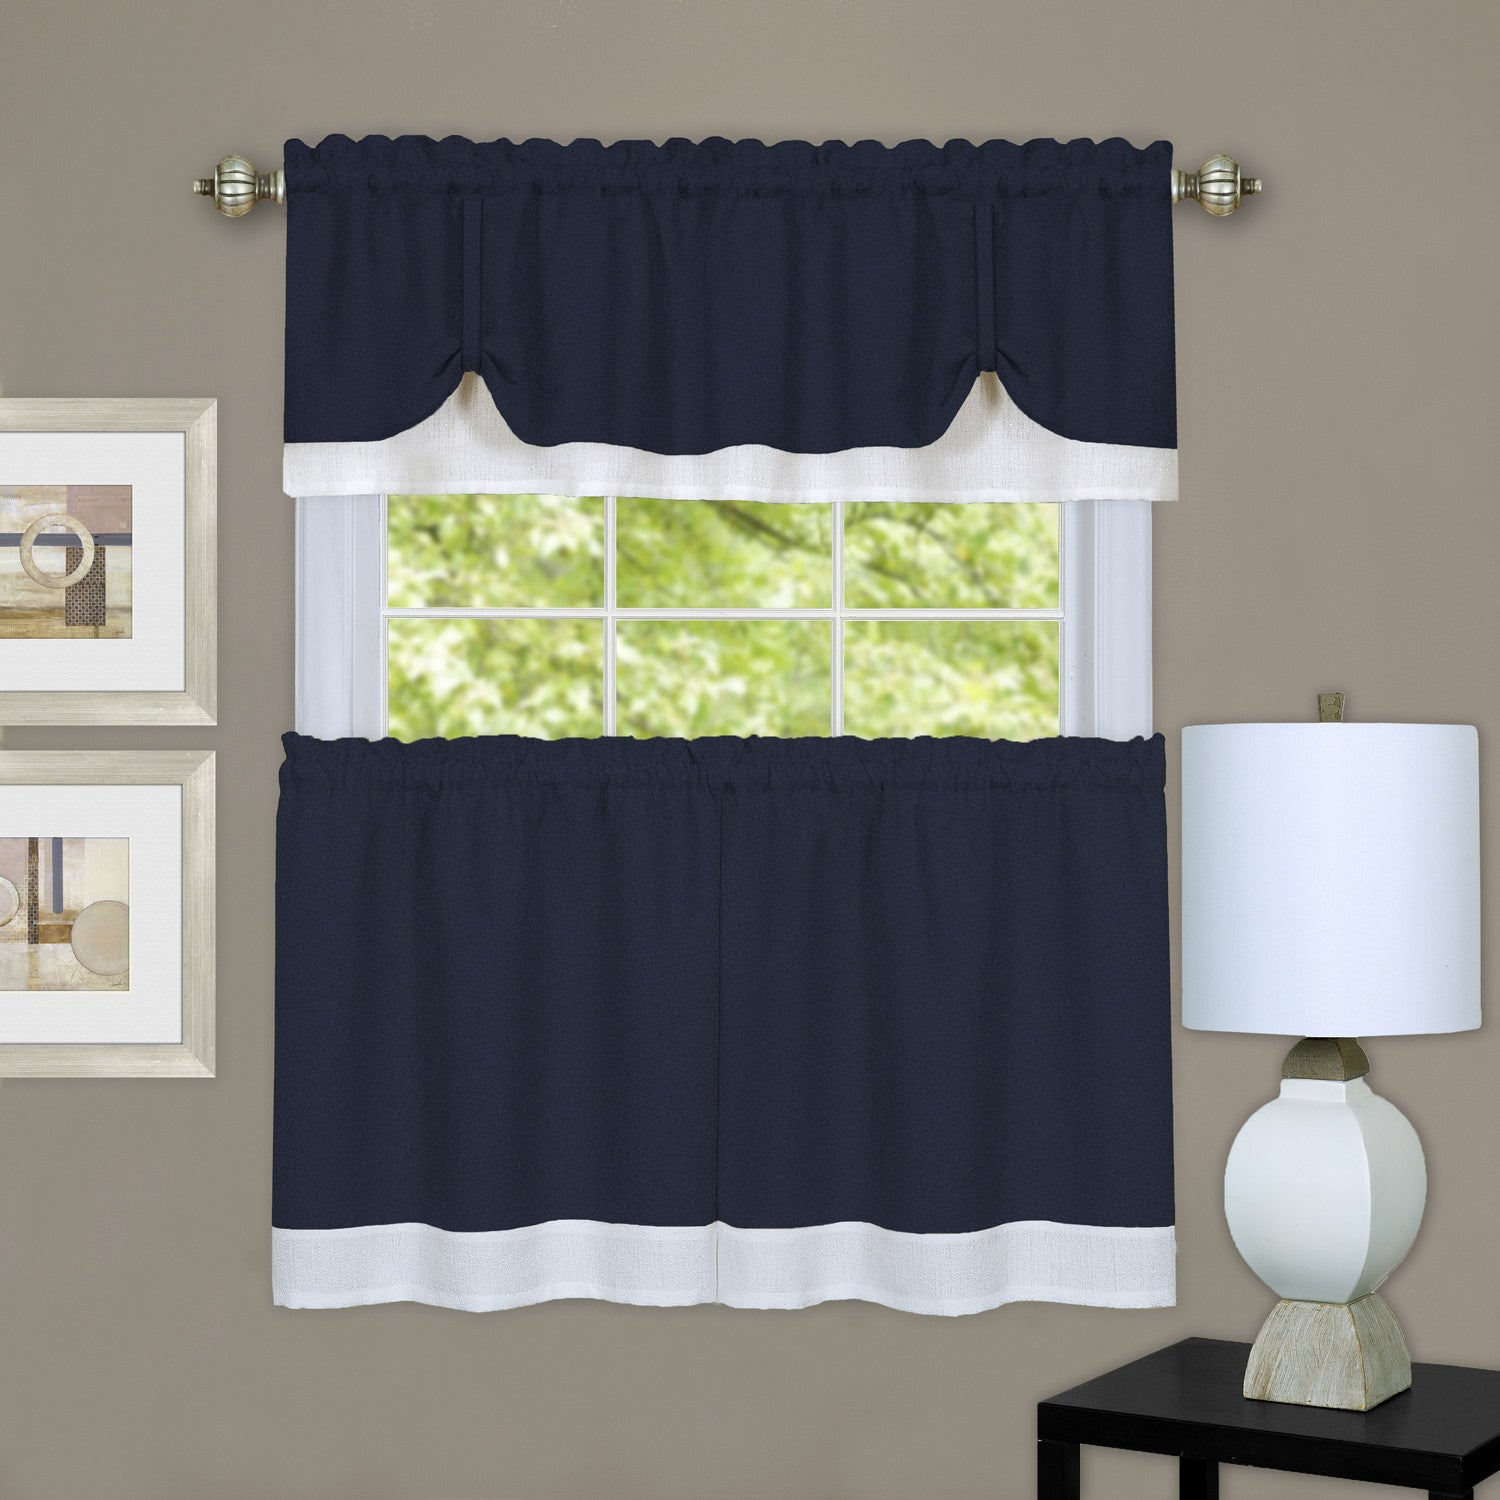 Darcy Rod Pocket Tier&Valance Set Layered Tie up Valance